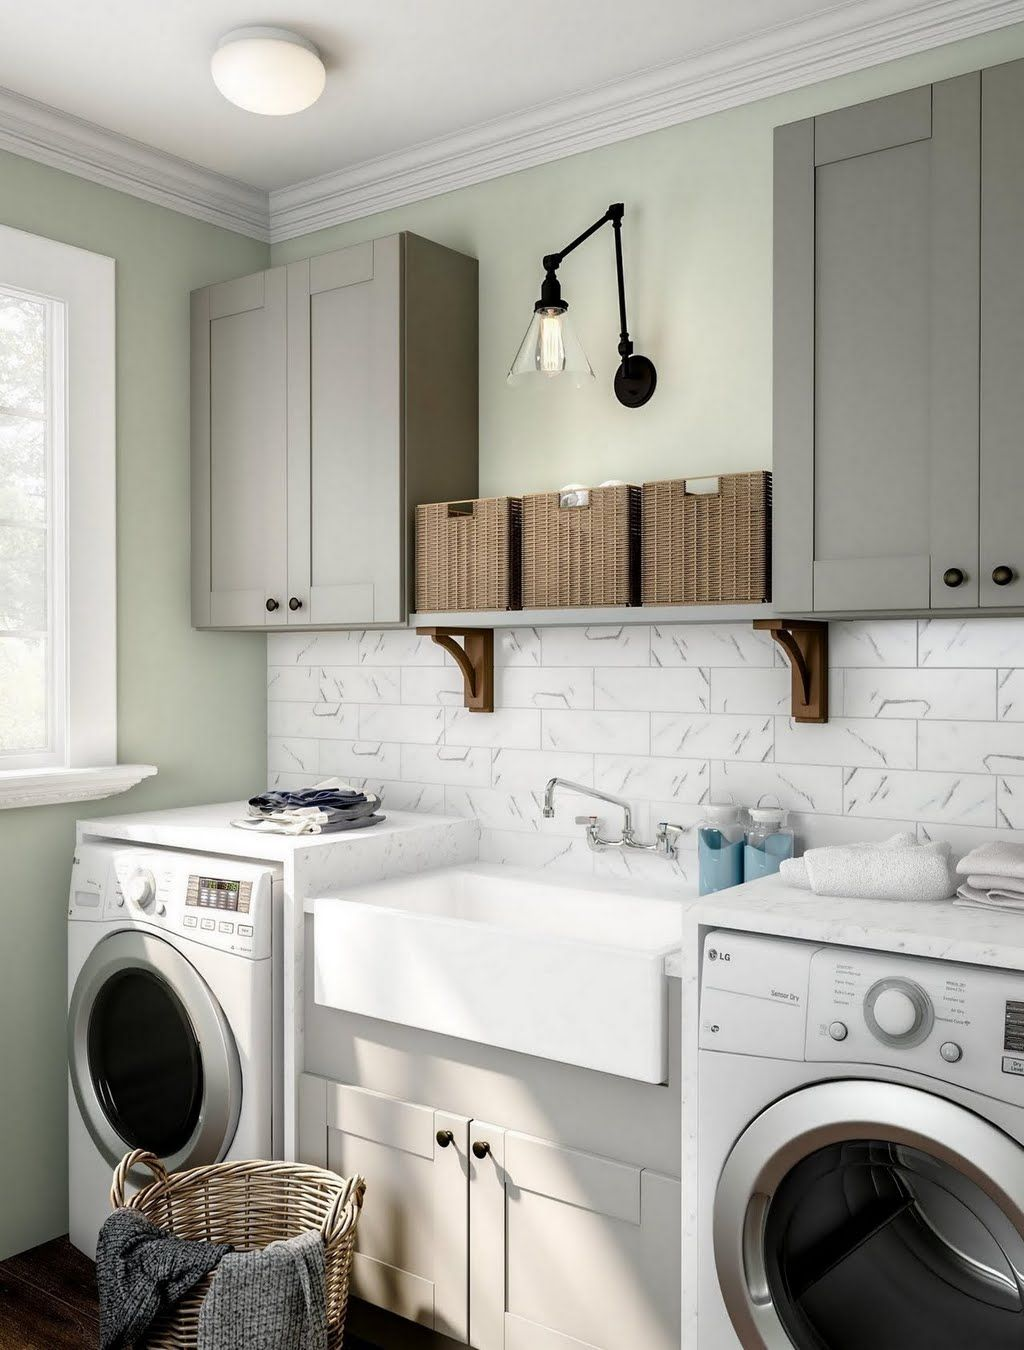 Hampton Bay Shaker Assembled 36x34 5x24 In Farmhouse Apron Front Sink Base Kitchen Cabinet In Dove G Grey Laundry Rooms White Laundry Rooms Laundry Room Decor